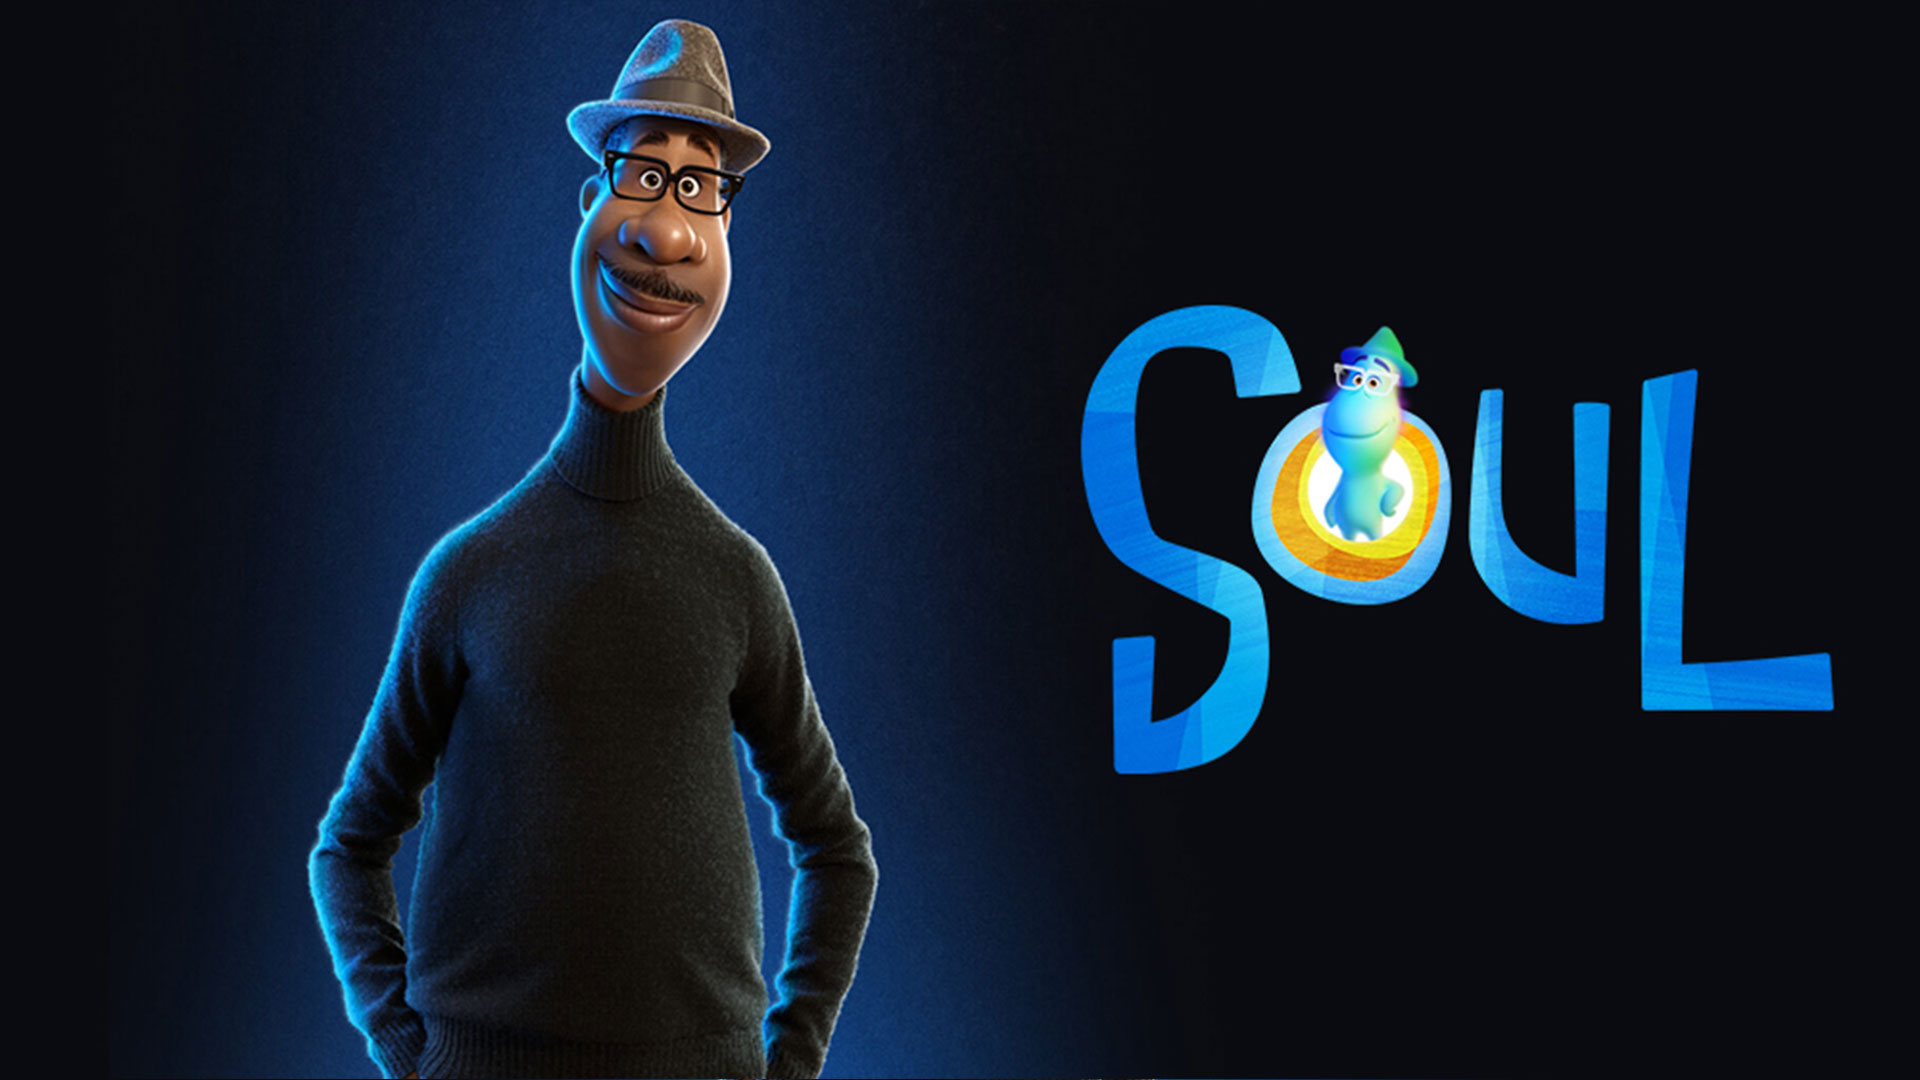 HD wallpaper PIXAR'S SOUL review